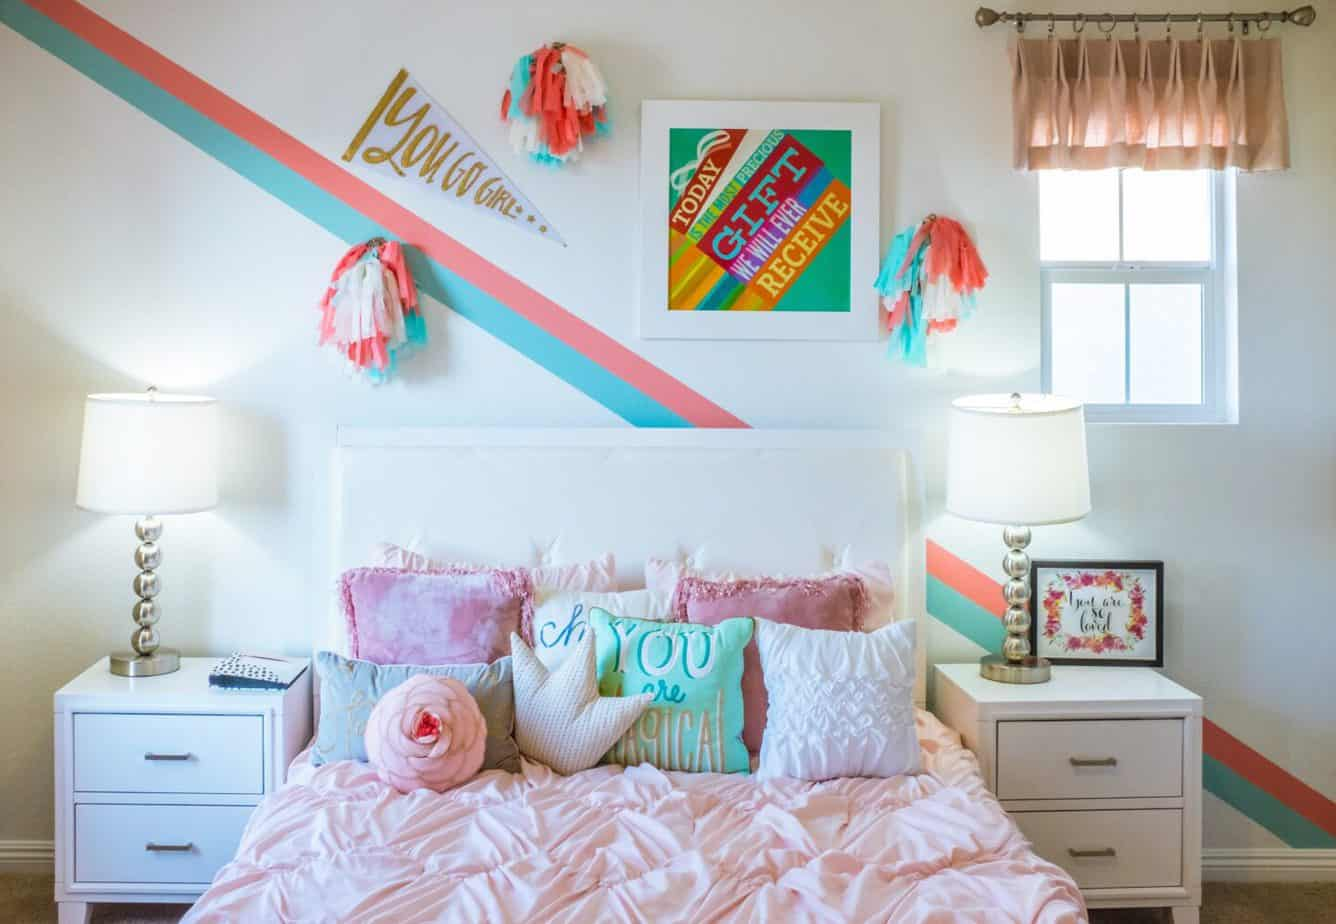 Bedroom renovations – Don't ignore the fun stuff